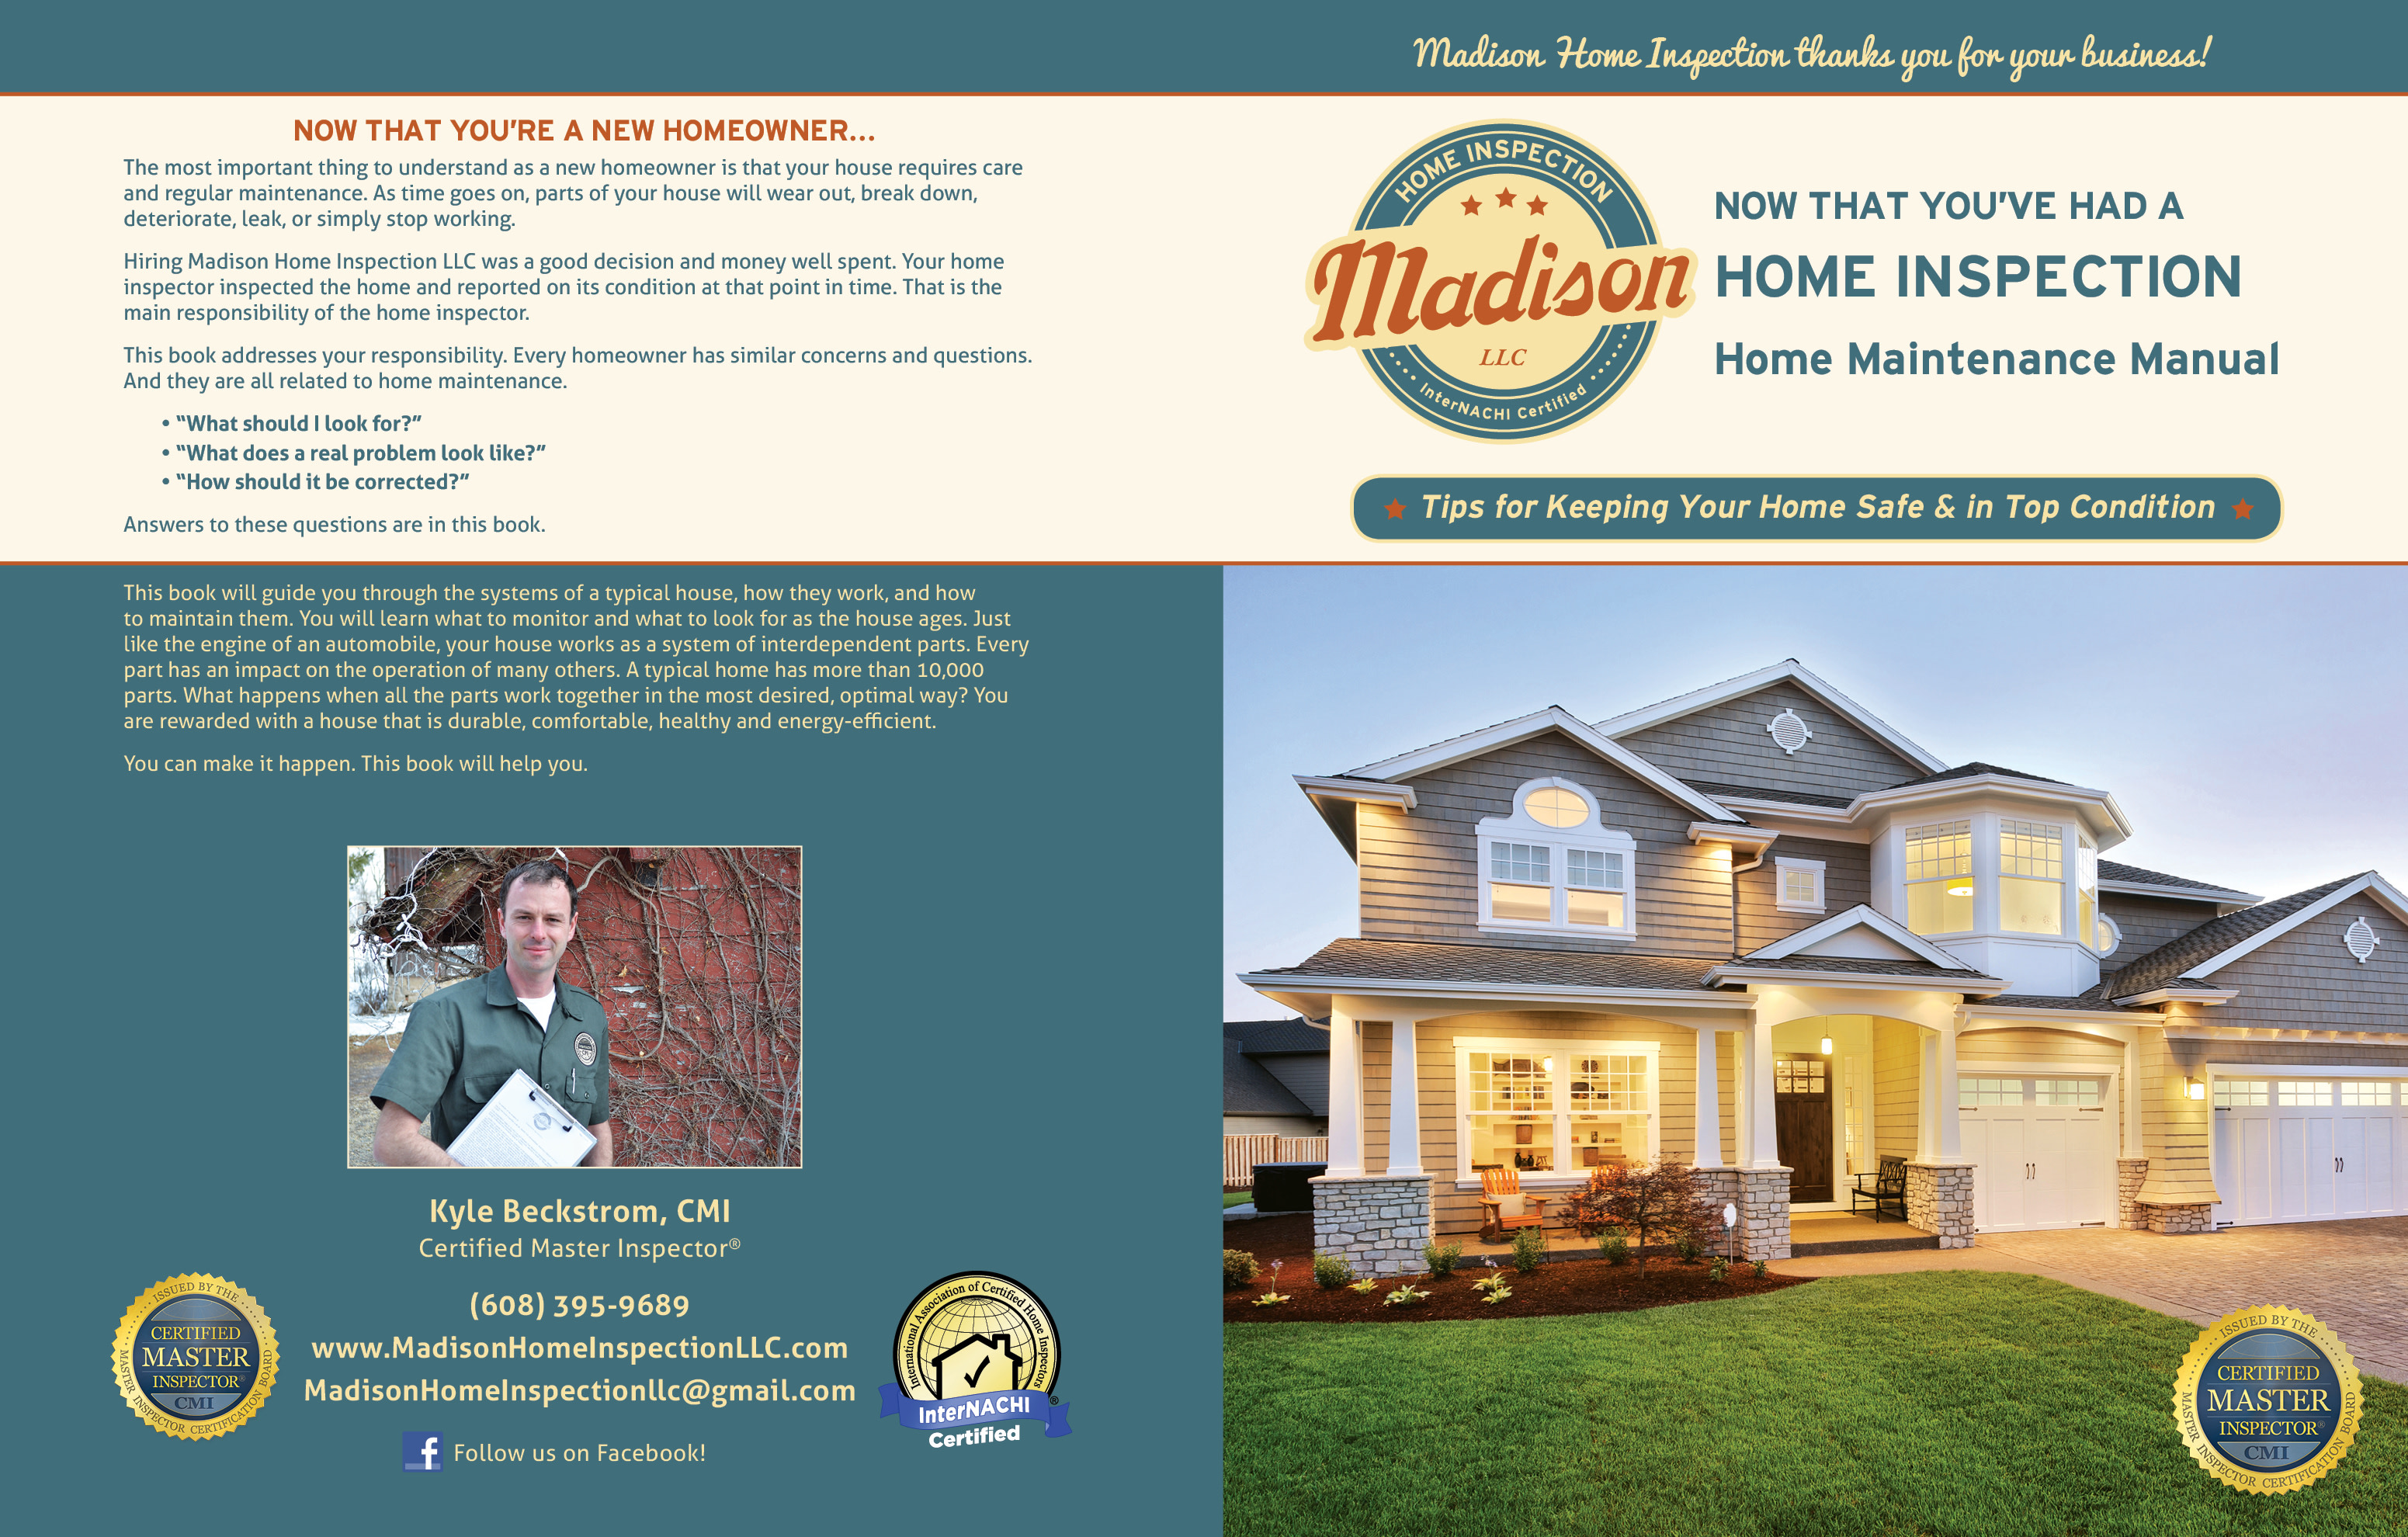 Custom Home Maintenance Book for Madison Home Inspection.